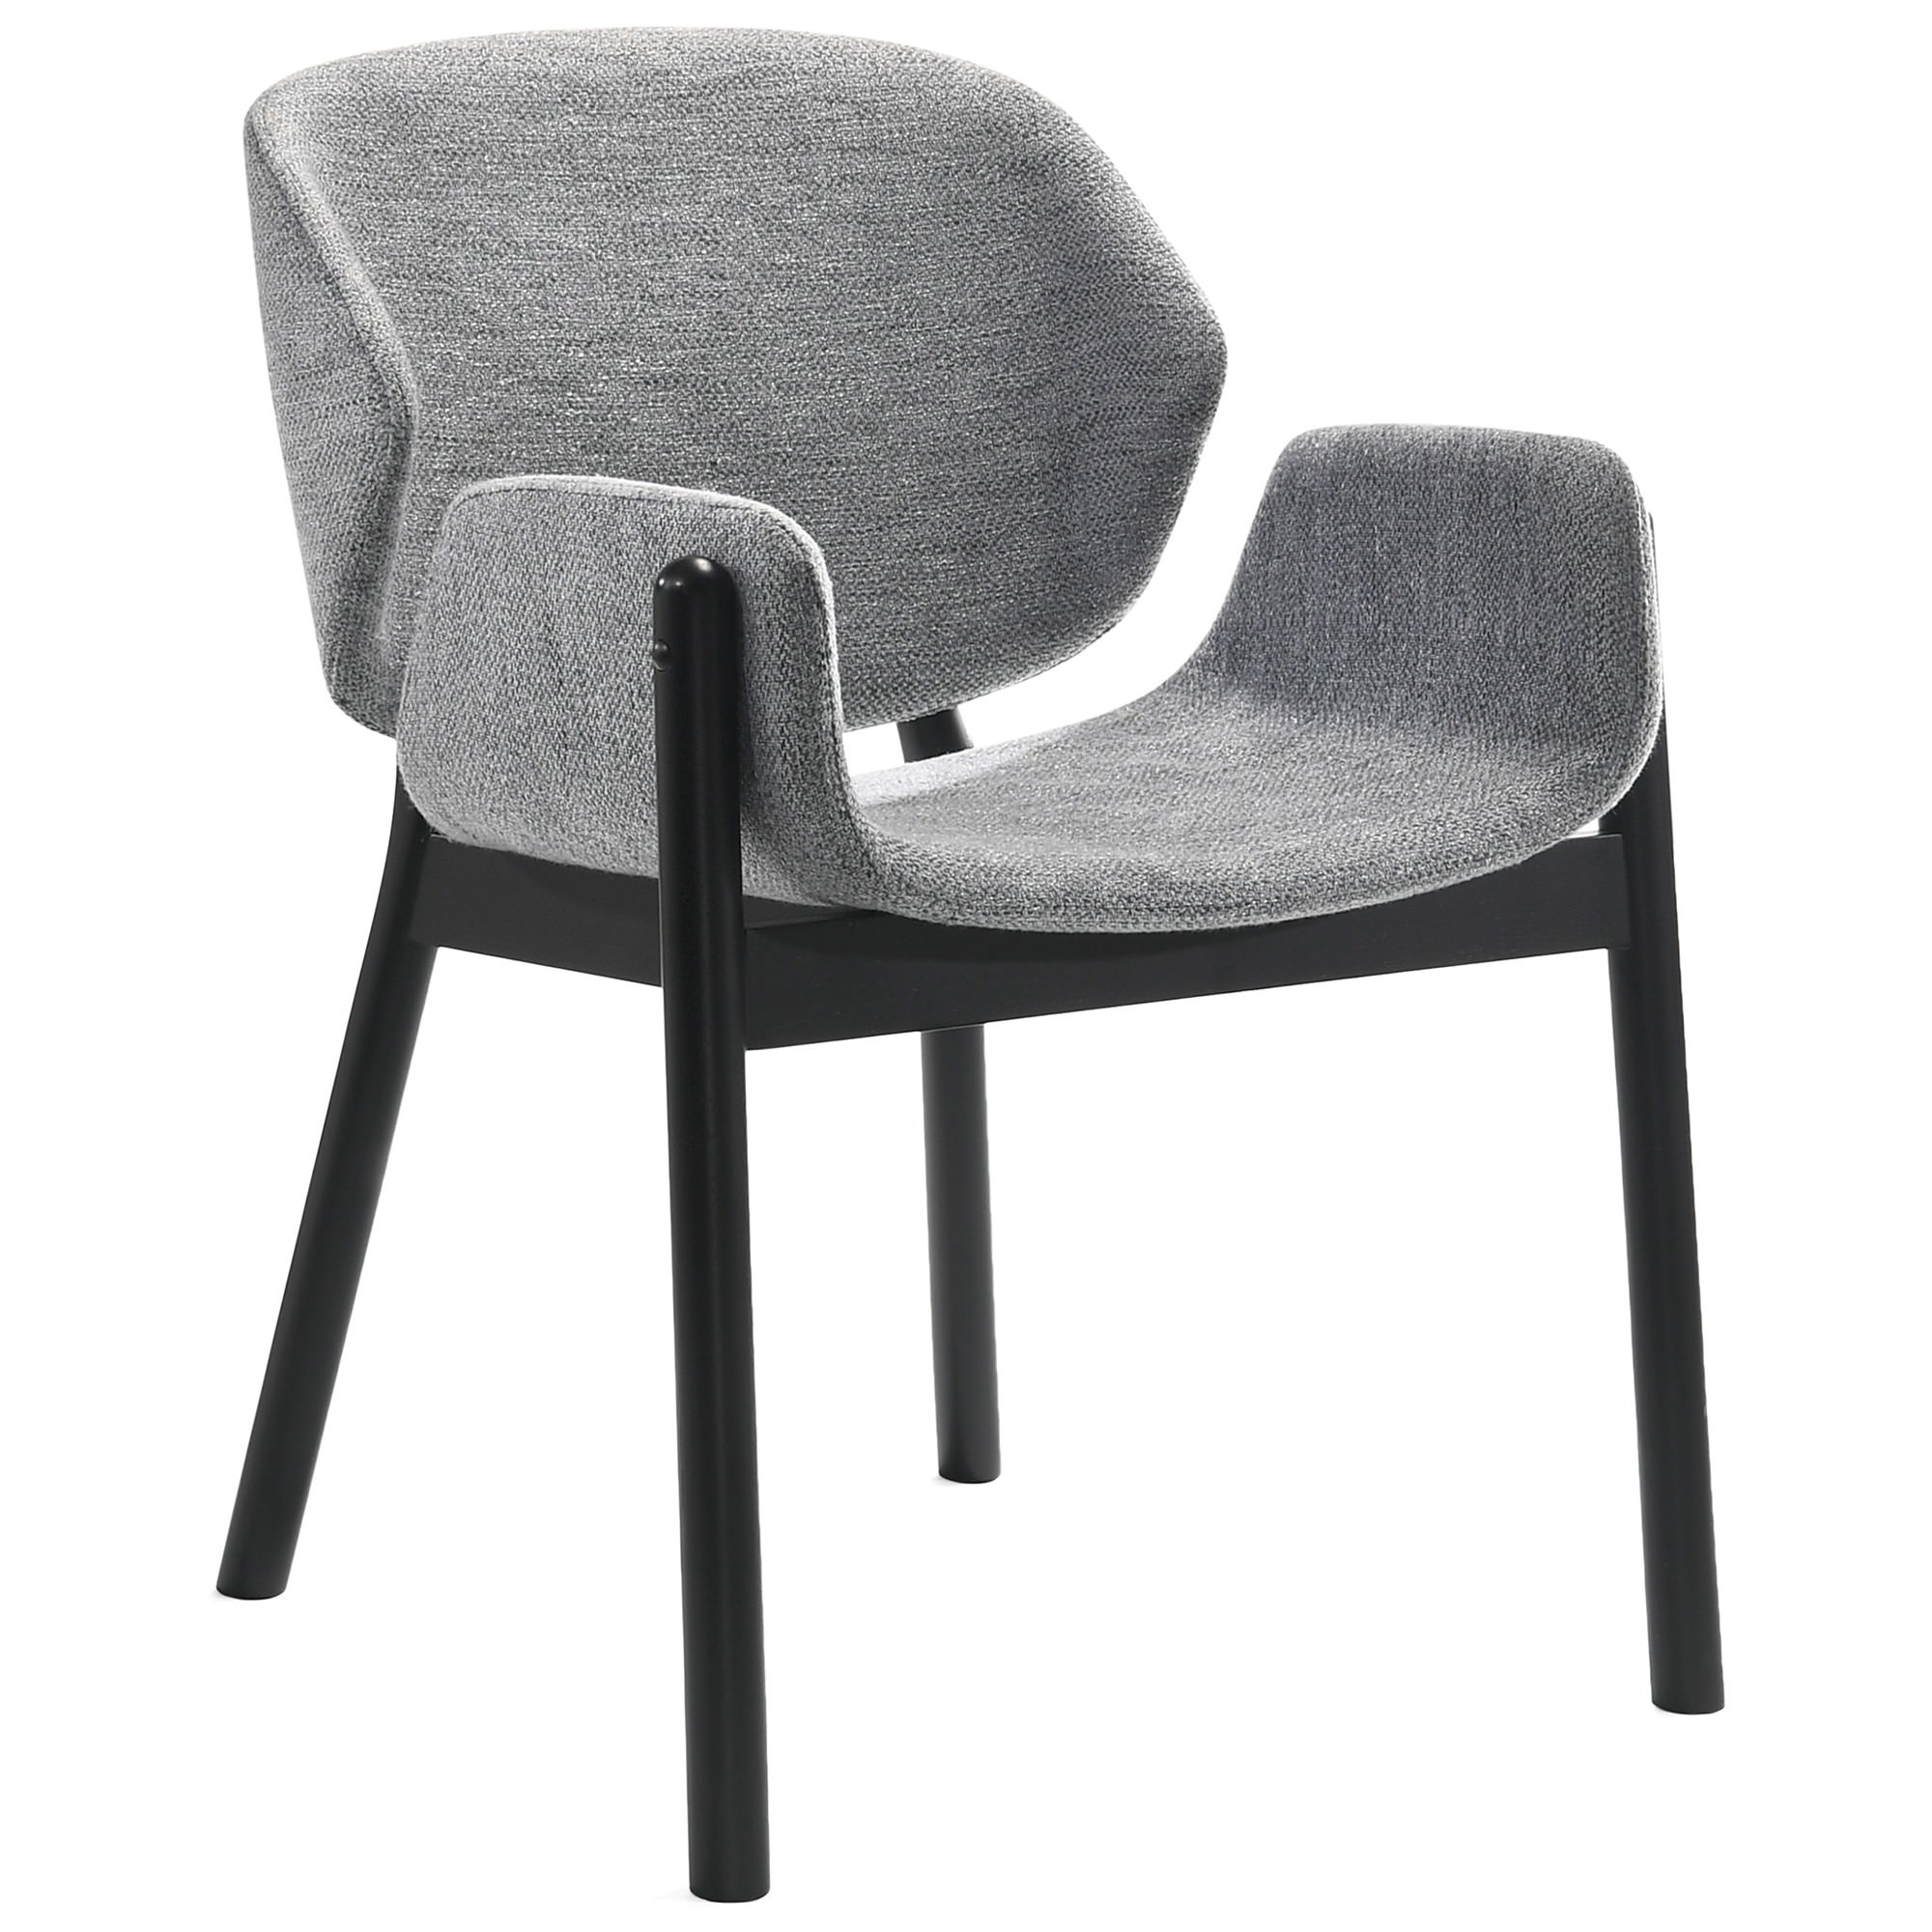 Kenji Commercial Grade Fabric Dining Chair